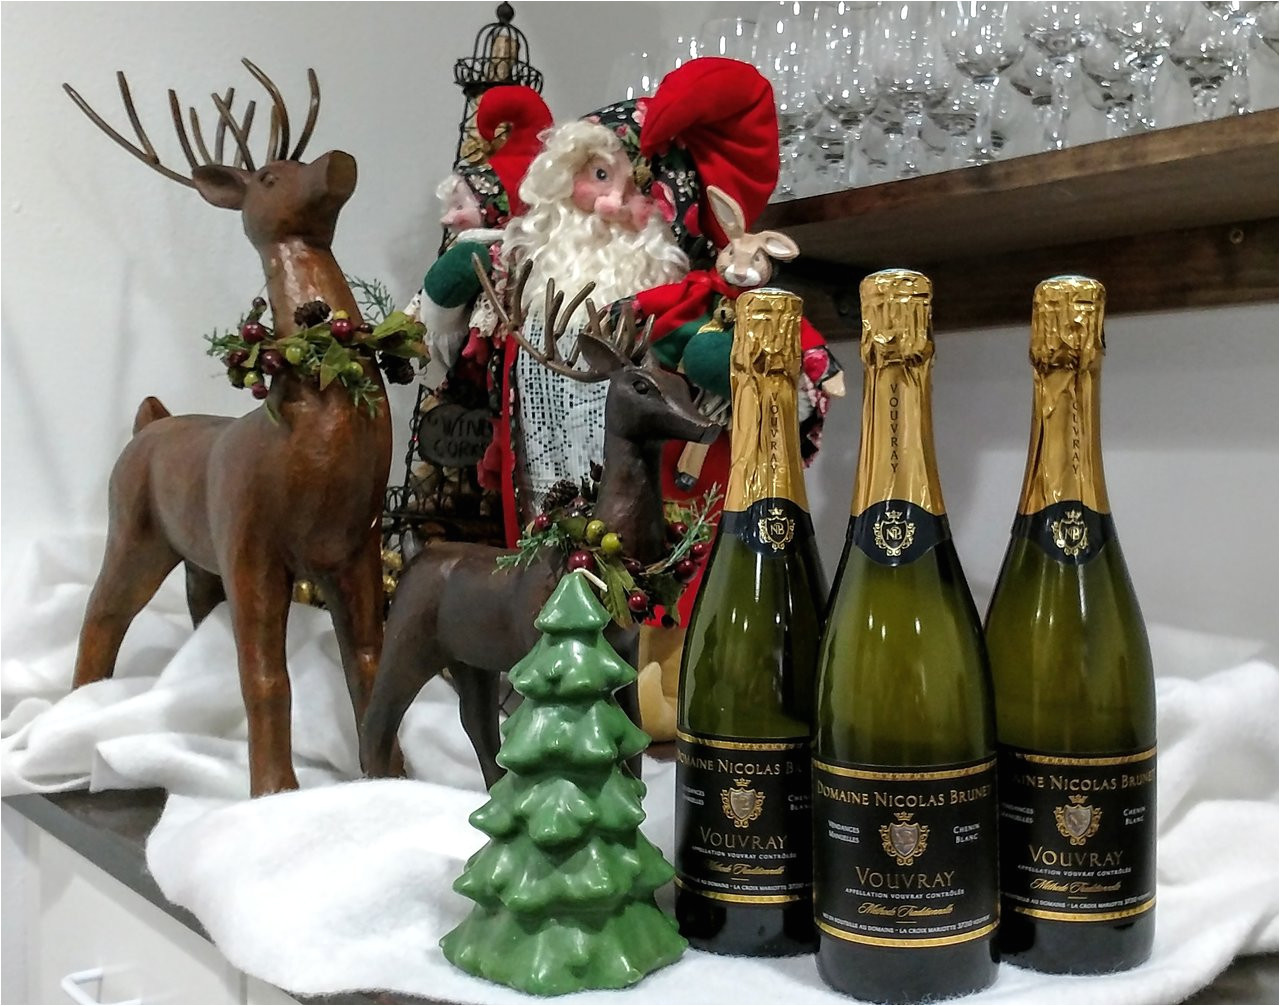 houston sommeliers picks for best sparkling wines for the holidays